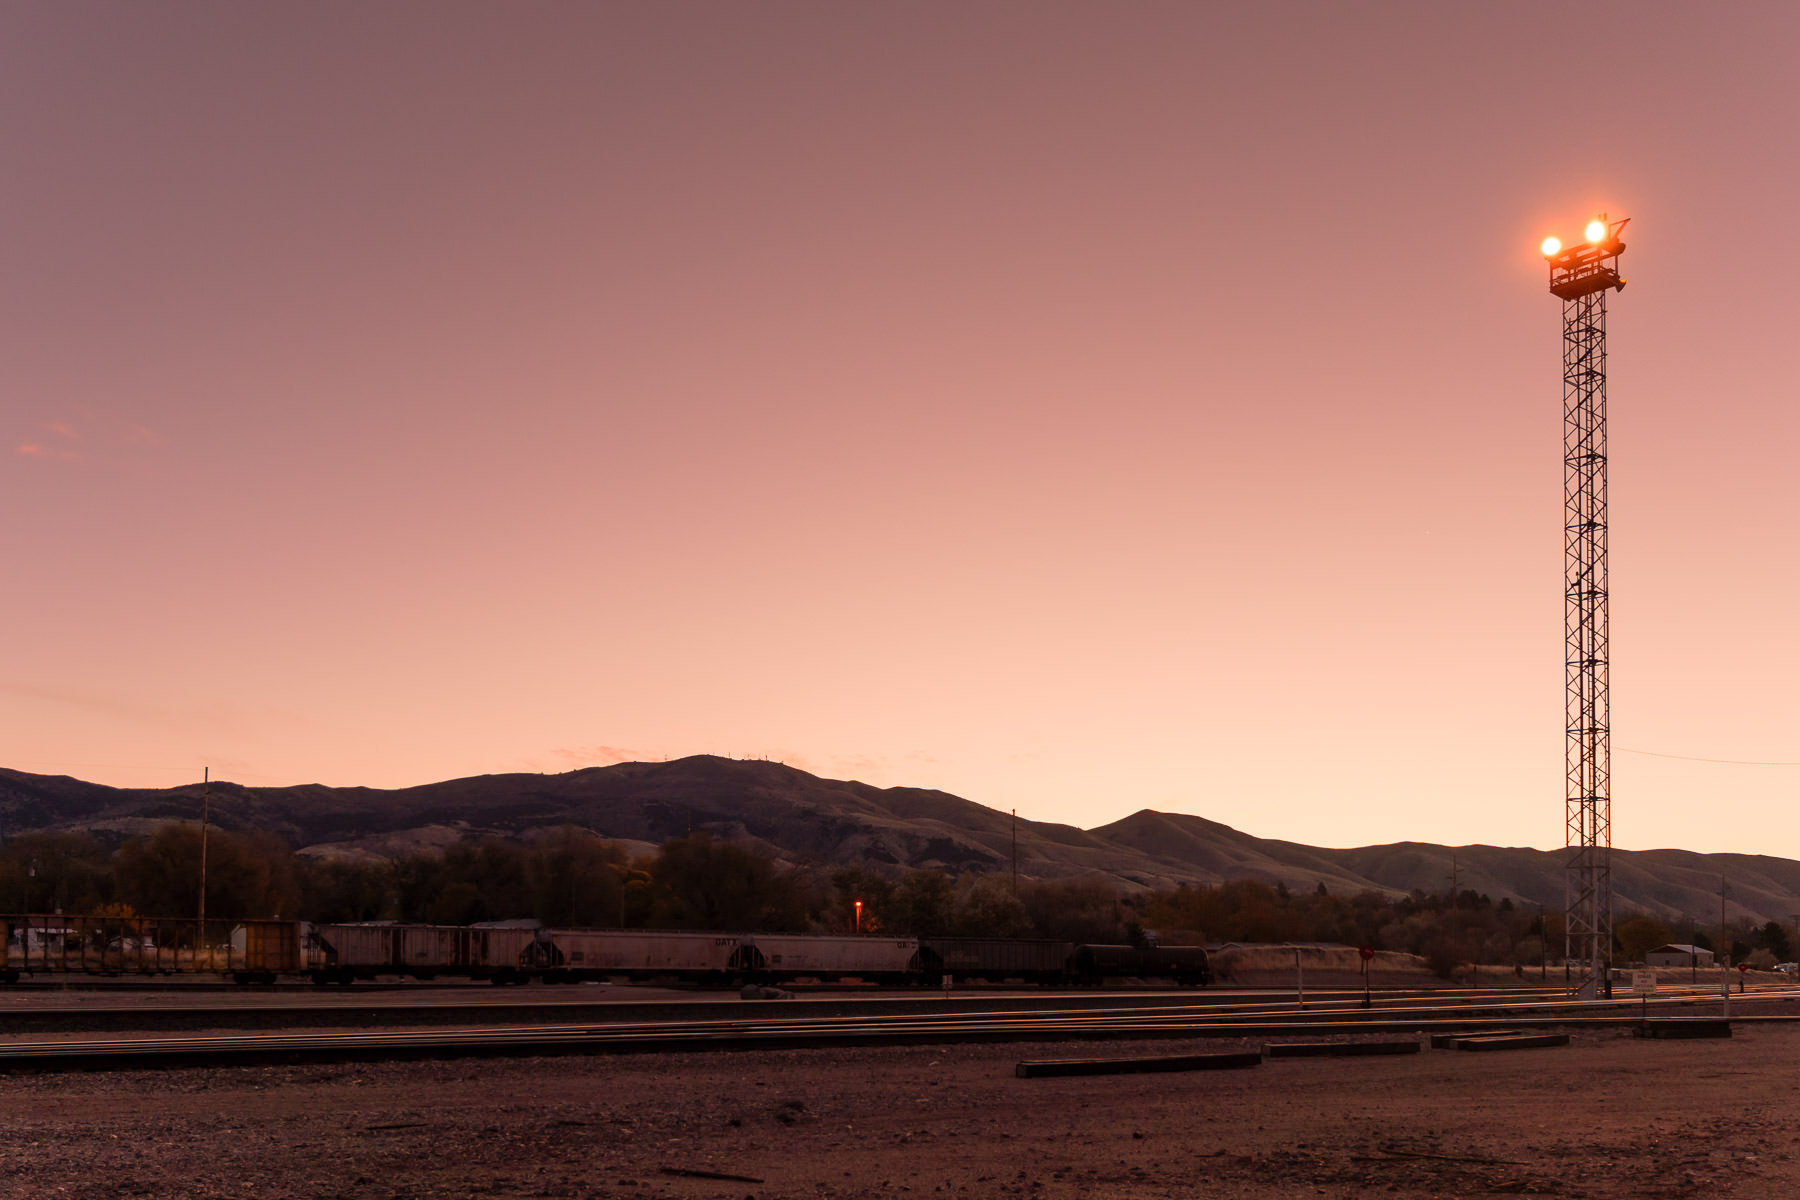 A light tower oversees a rail yard on the outskirts of Pocatello, Idaho, as the sun rises on the surrounding hills.